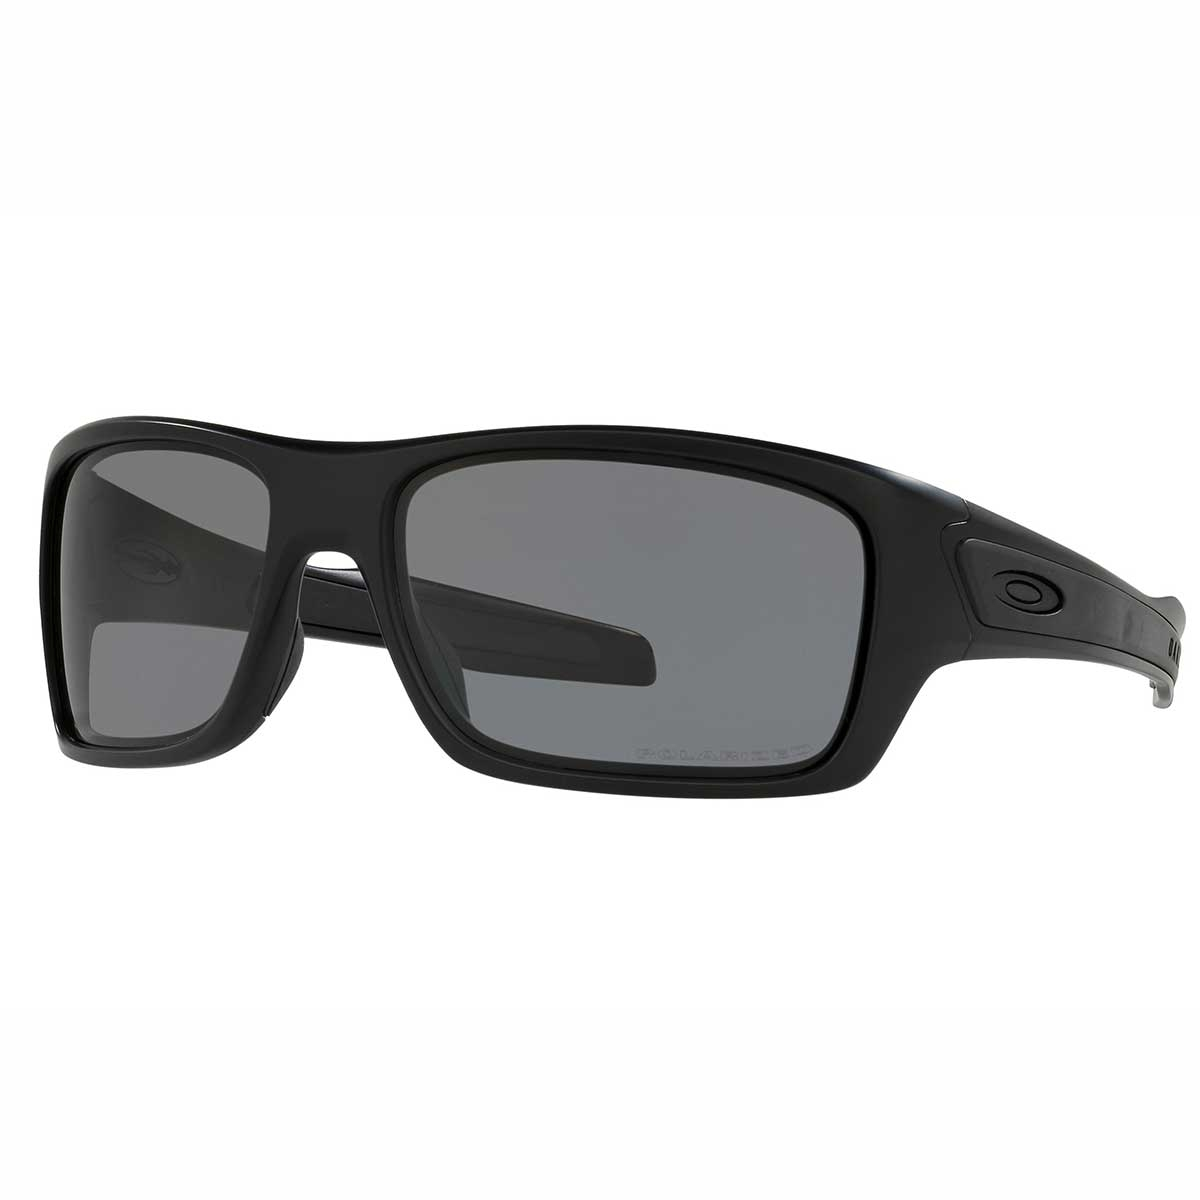 dc54936867 Lentes De Sol Oakley Turbine Matte Black Gray Polarized